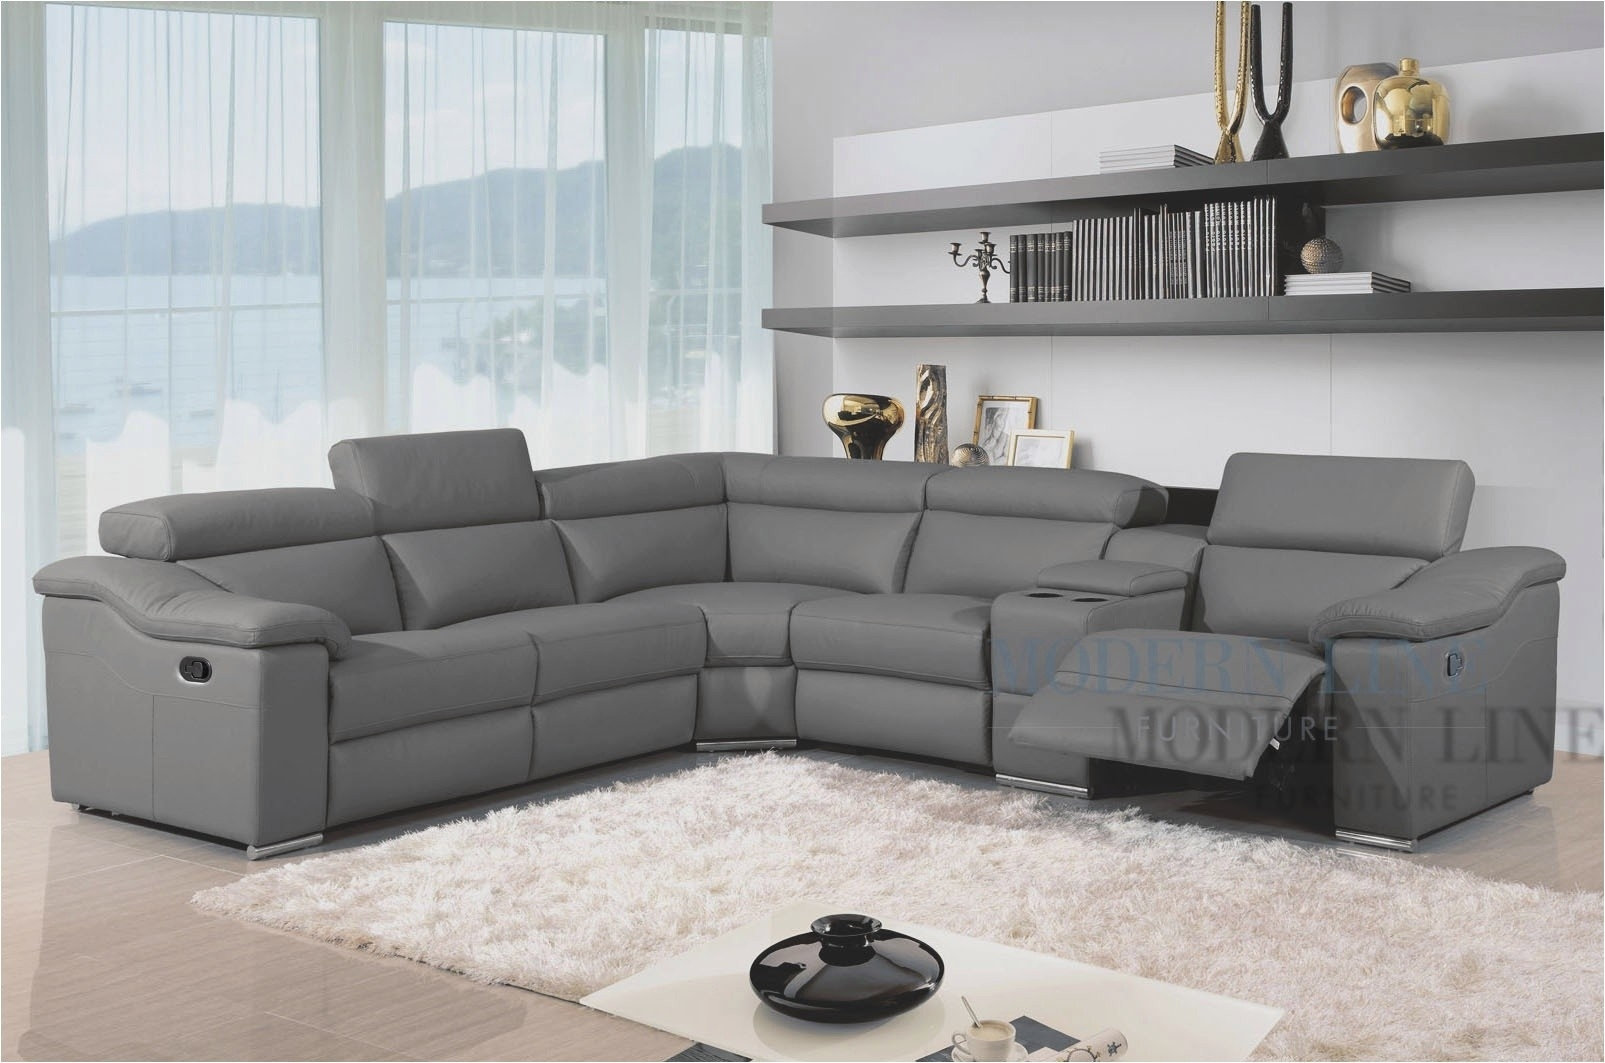 Grey Leather Reclining Sectional Clyde 3 Piece Power W Pwr Hdrst for Clyde Grey Leather 3 Piece Power Reclining Sectionals With Pwr Hdrst & Usb (Image 8 of 30)